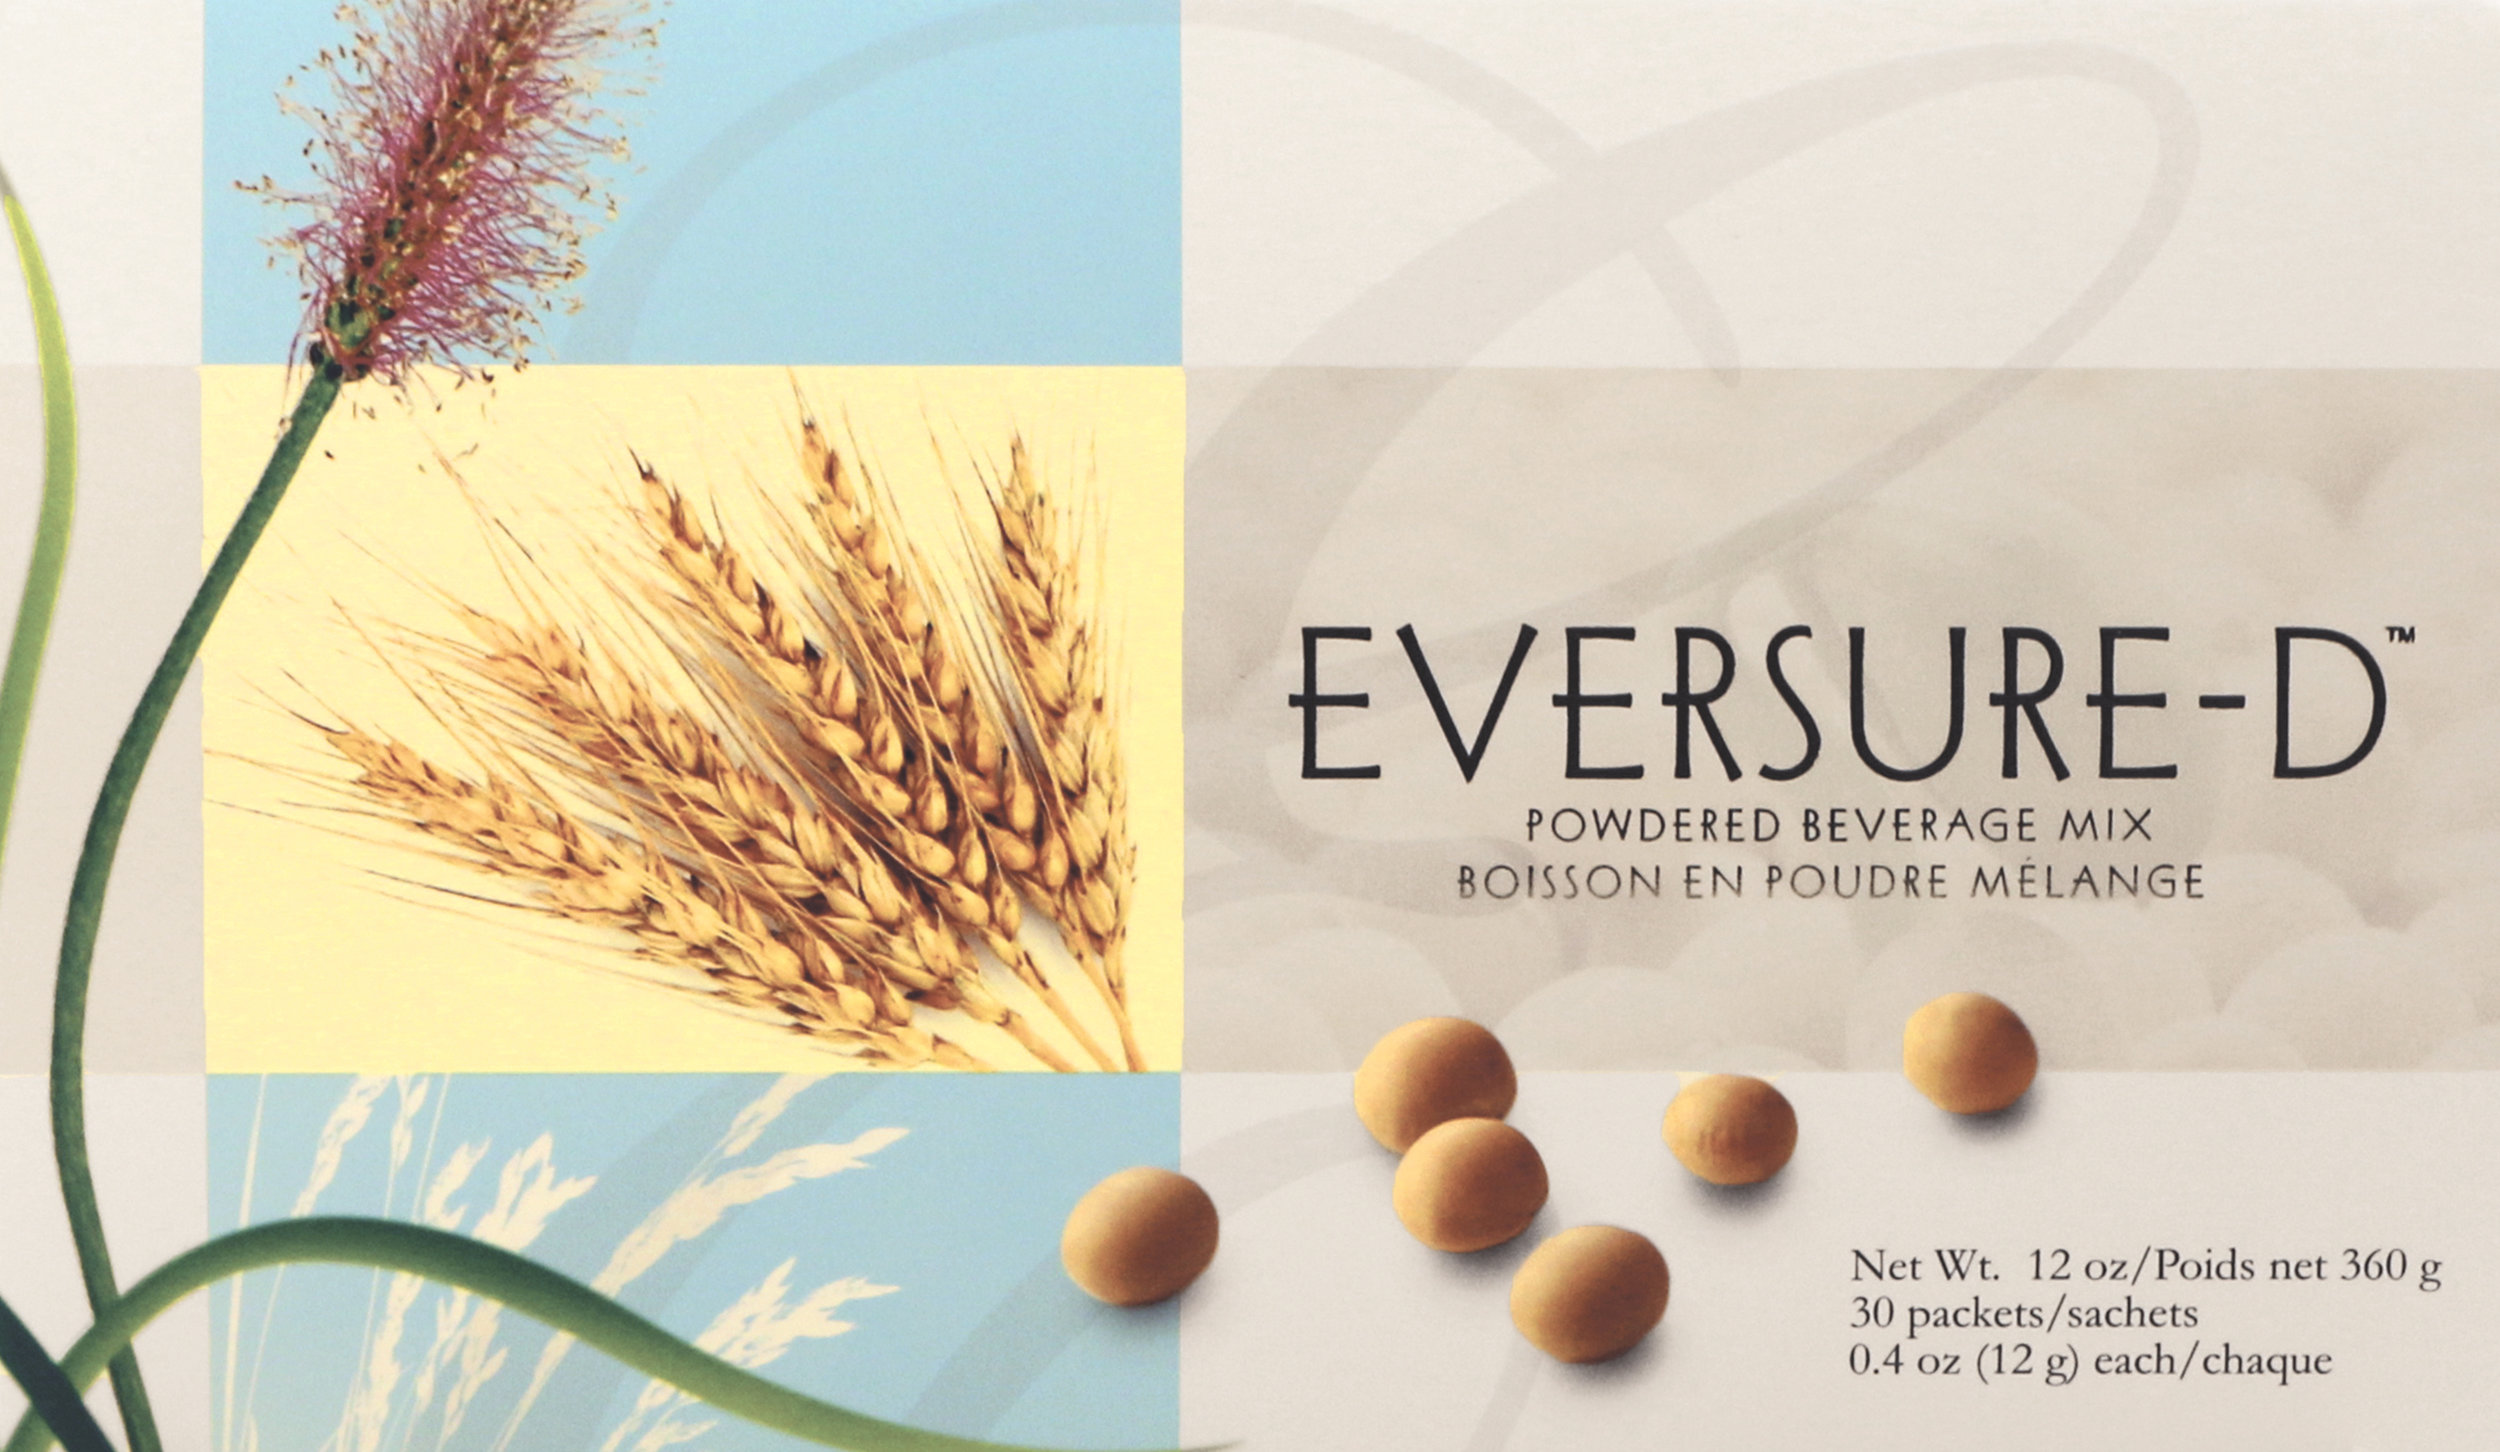 eversure-d - EverSure-D is a healthy, plant-based, low-carb, low-sugar, vegan beverage that contains phytonutrients, such as wholesome non-GMO soy, protein and fiber, not found in animal products.Featured Ingredients: Non-GMO Soy Protein, Psyllium Husk, Wheat Bran